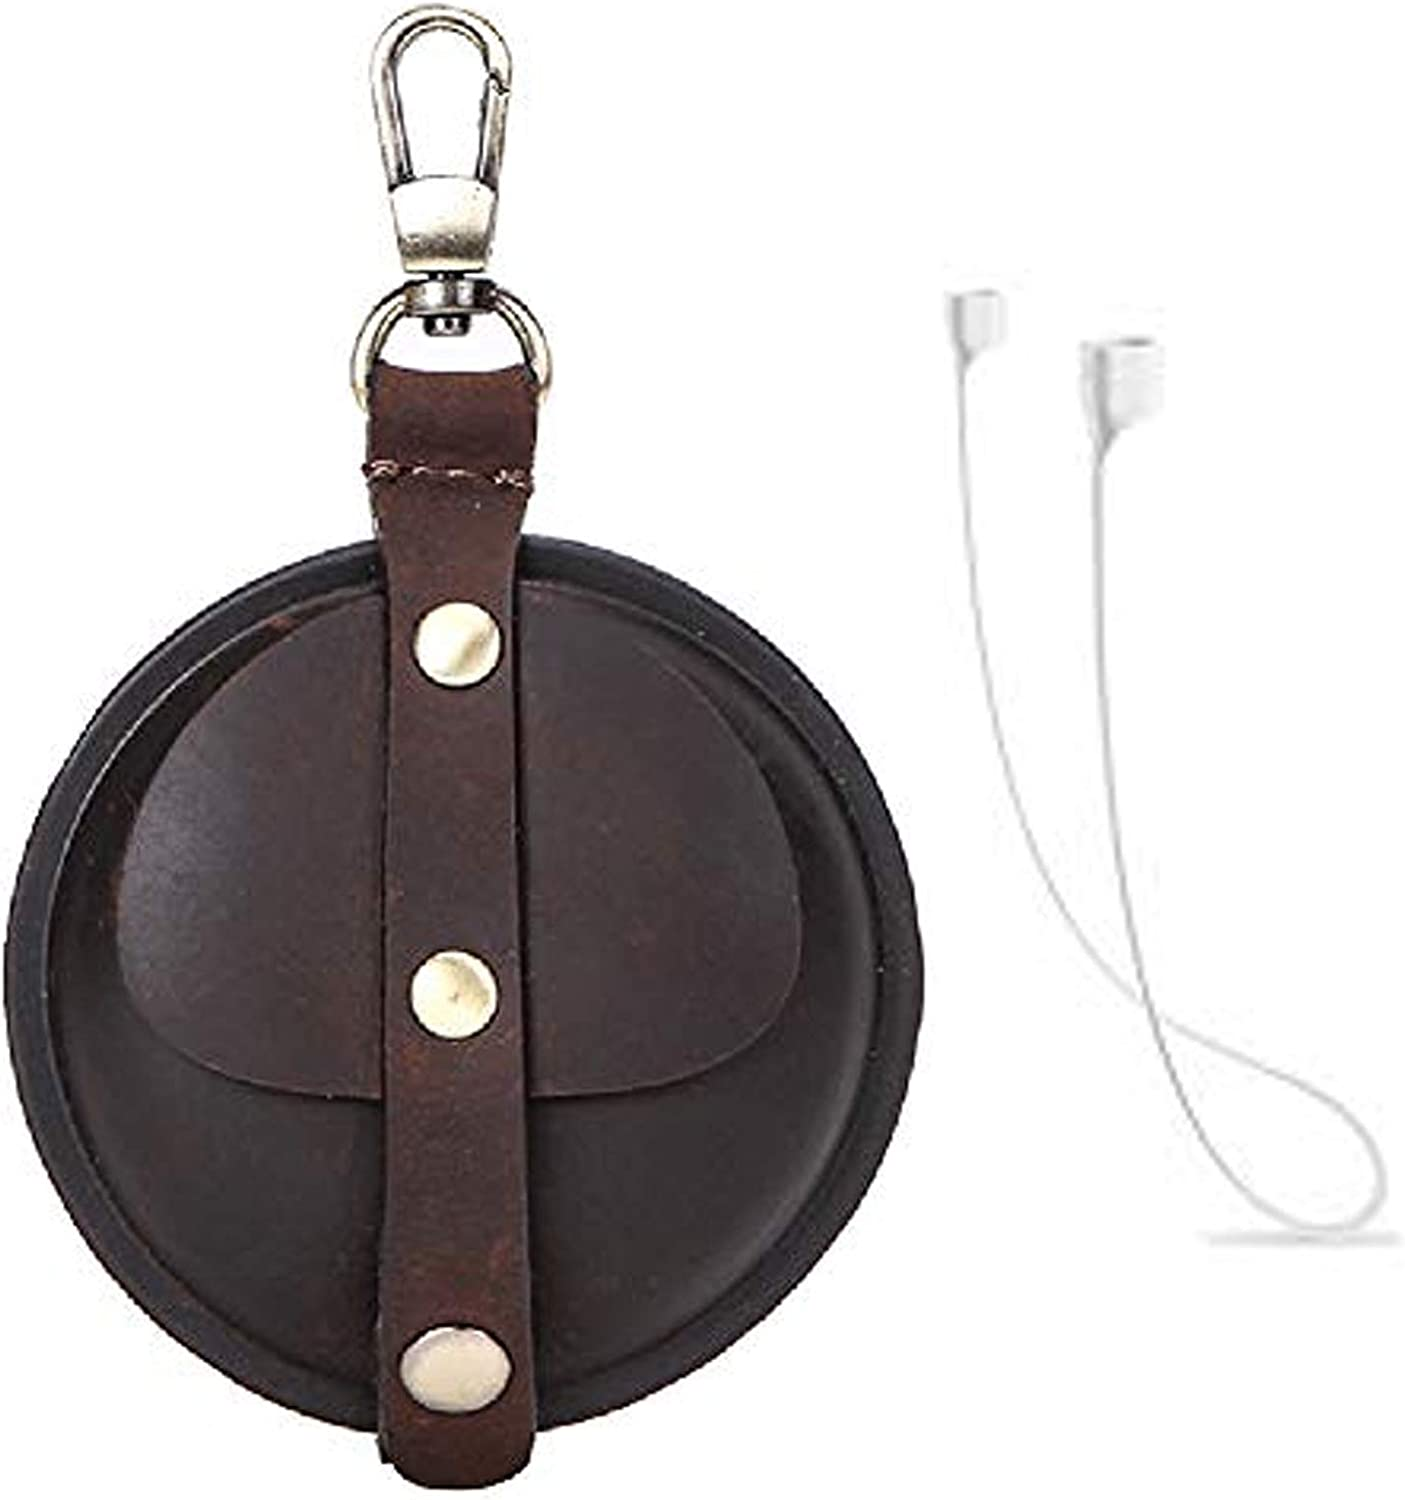 Case Cover for Airpods Pro with Silicone Anti-Lost Rope Clamshell Crazy Horse Genuine Leather Round Portable Shockproof Protective Earbud Sleeve with Keychain for Apple Airpods Pro 3 2019,A